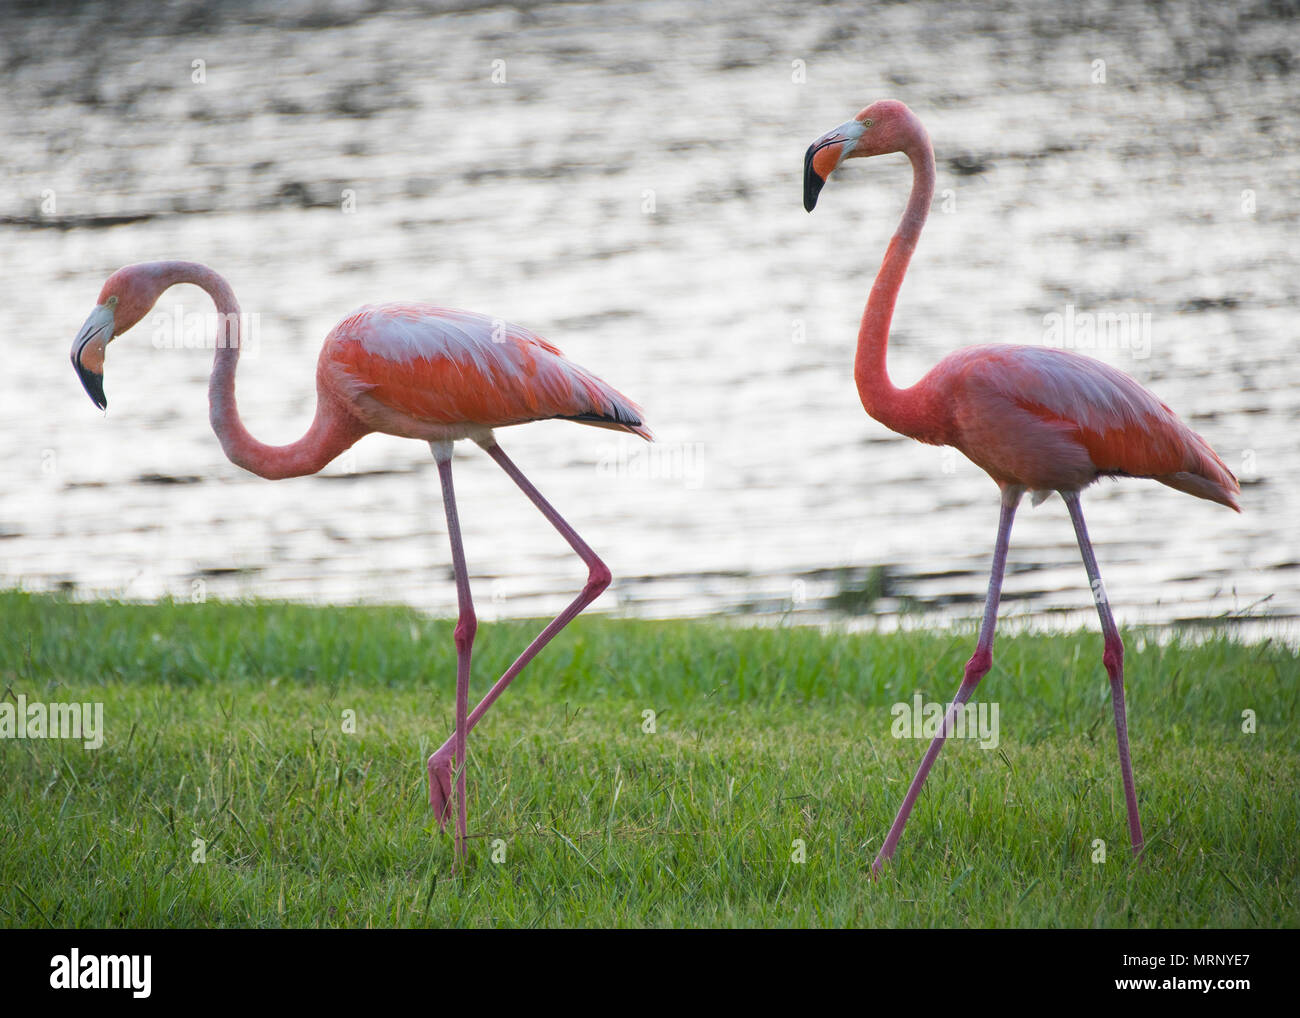 A pair of flamingos walk the bank of Weekly Pond June 23 at Eglin Air Force Base, Fla. According to a Jackson Guard biologist, the flamingos may be in the area because they were caught in a storm or seeking shelter from a weather front. (U.S. Air Force photo/Ilka Cole) - Stock Image